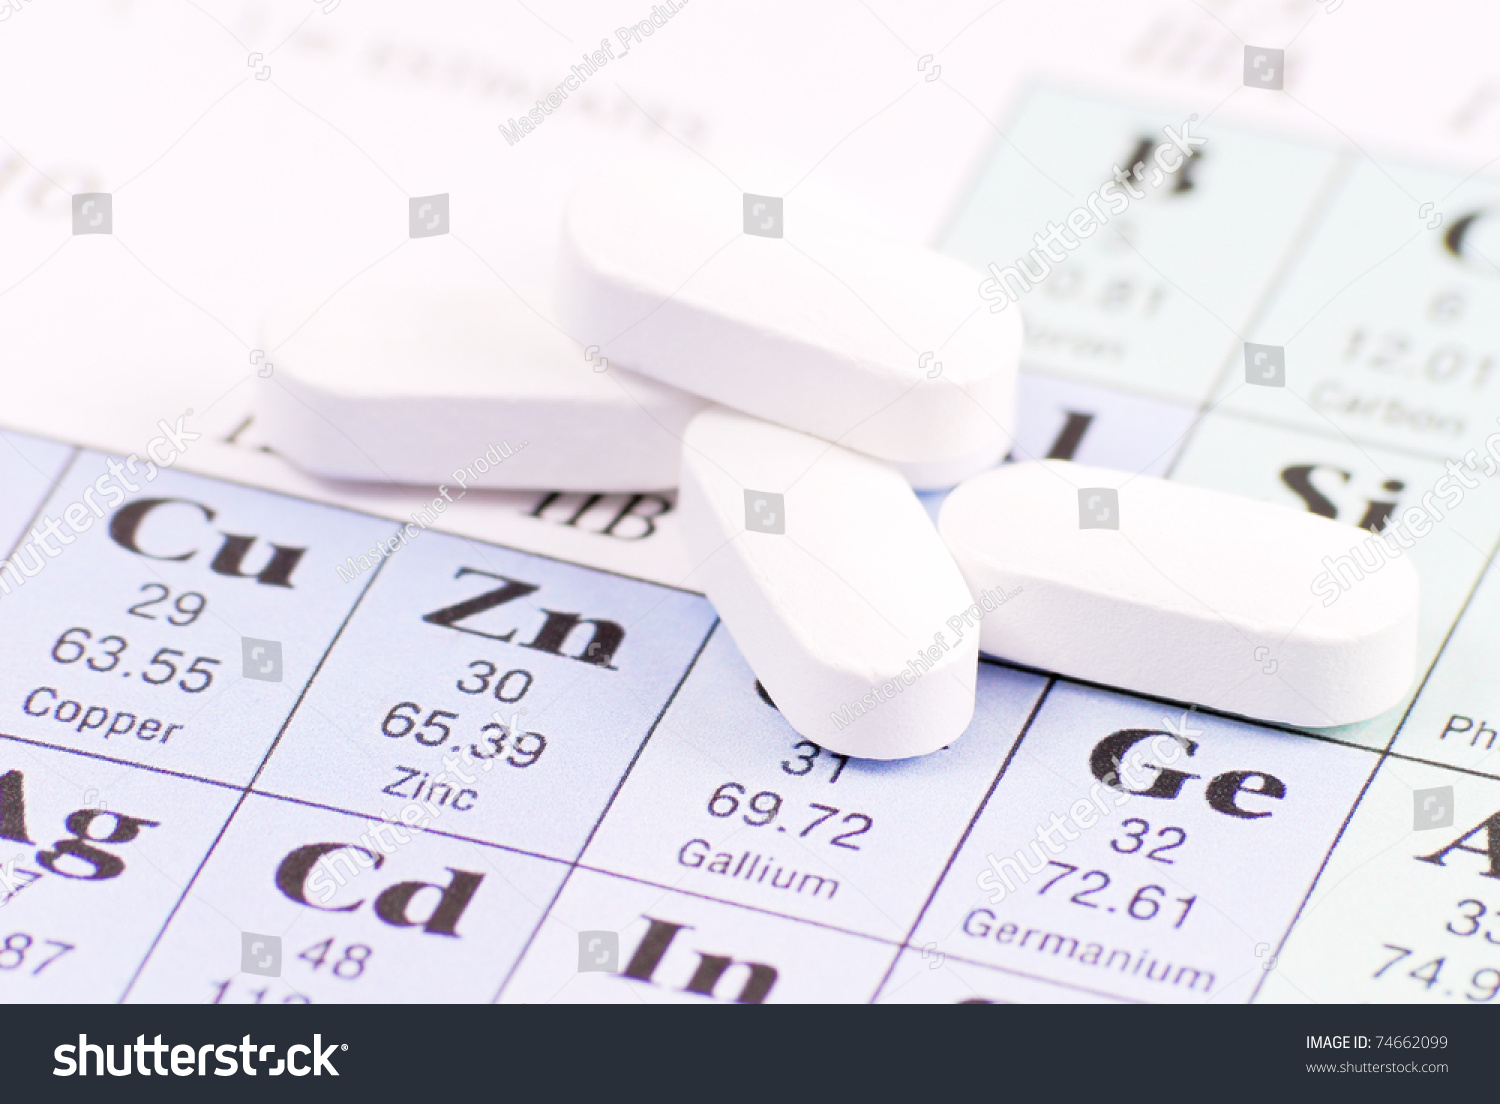 Zinc pill on periodic table elements stock photo 74662099 zinc pill on periodic table of elements gamestrikefo Gallery